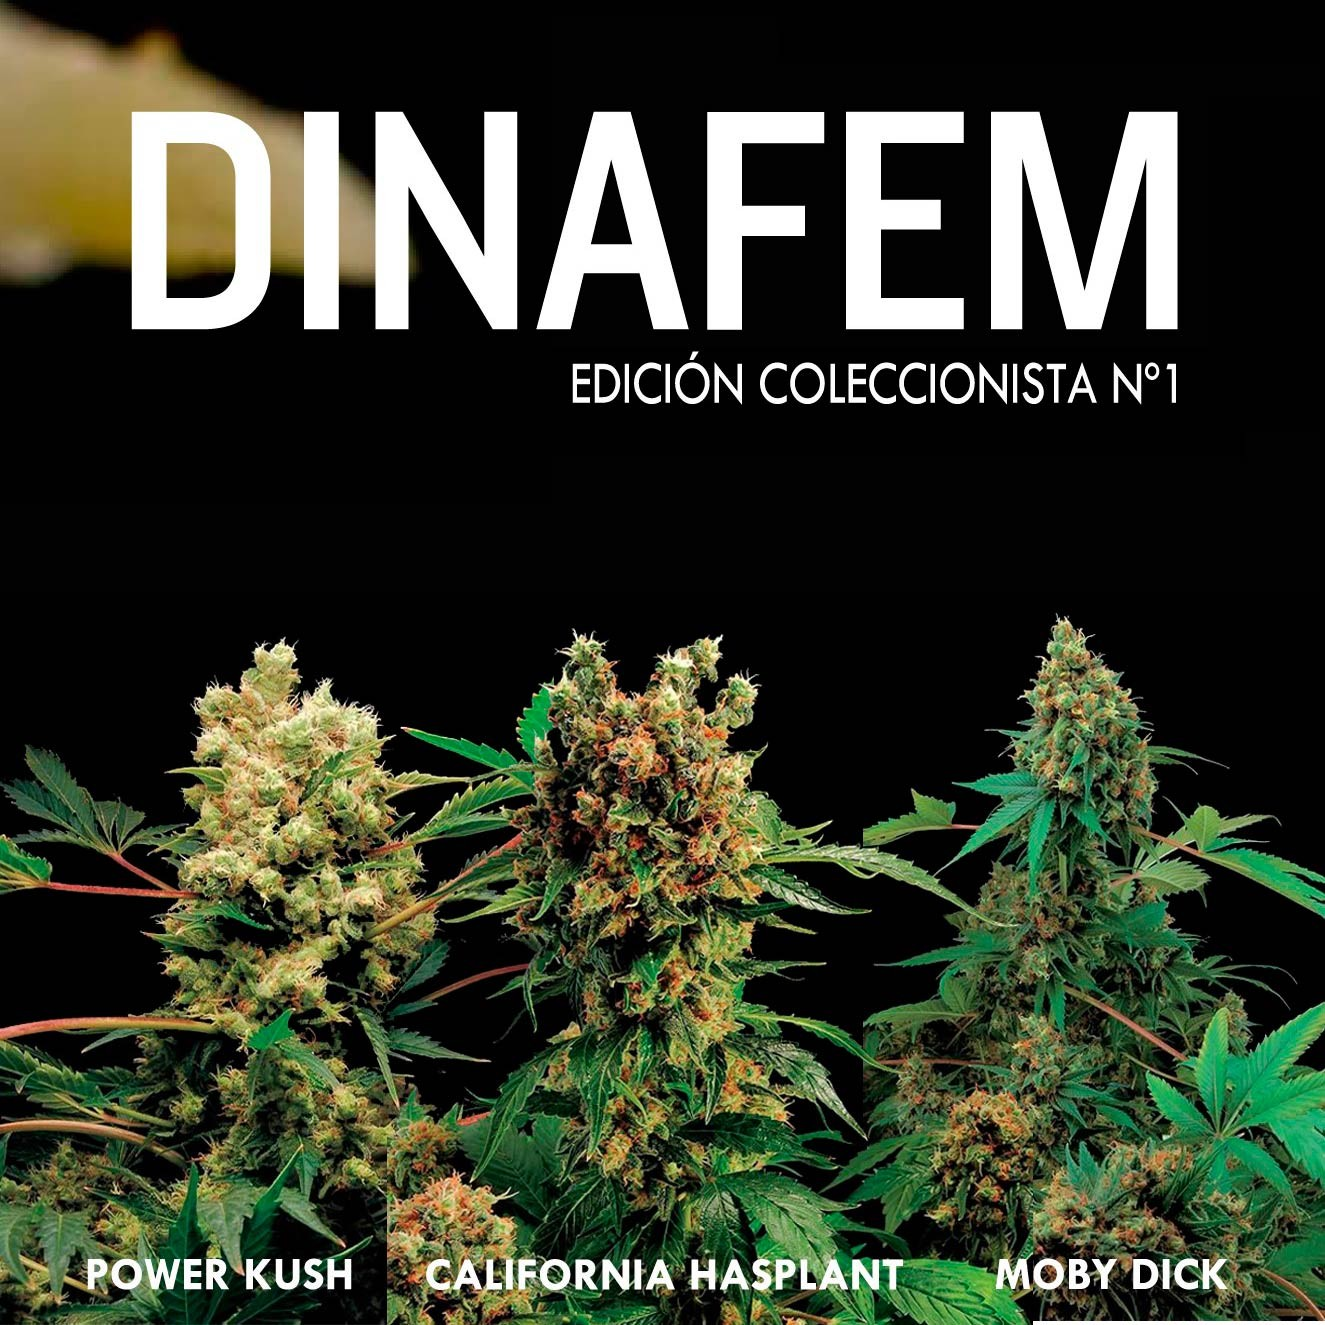 Dinafem collector #1 6 seeds - Collections - DINAFEM SEEDS